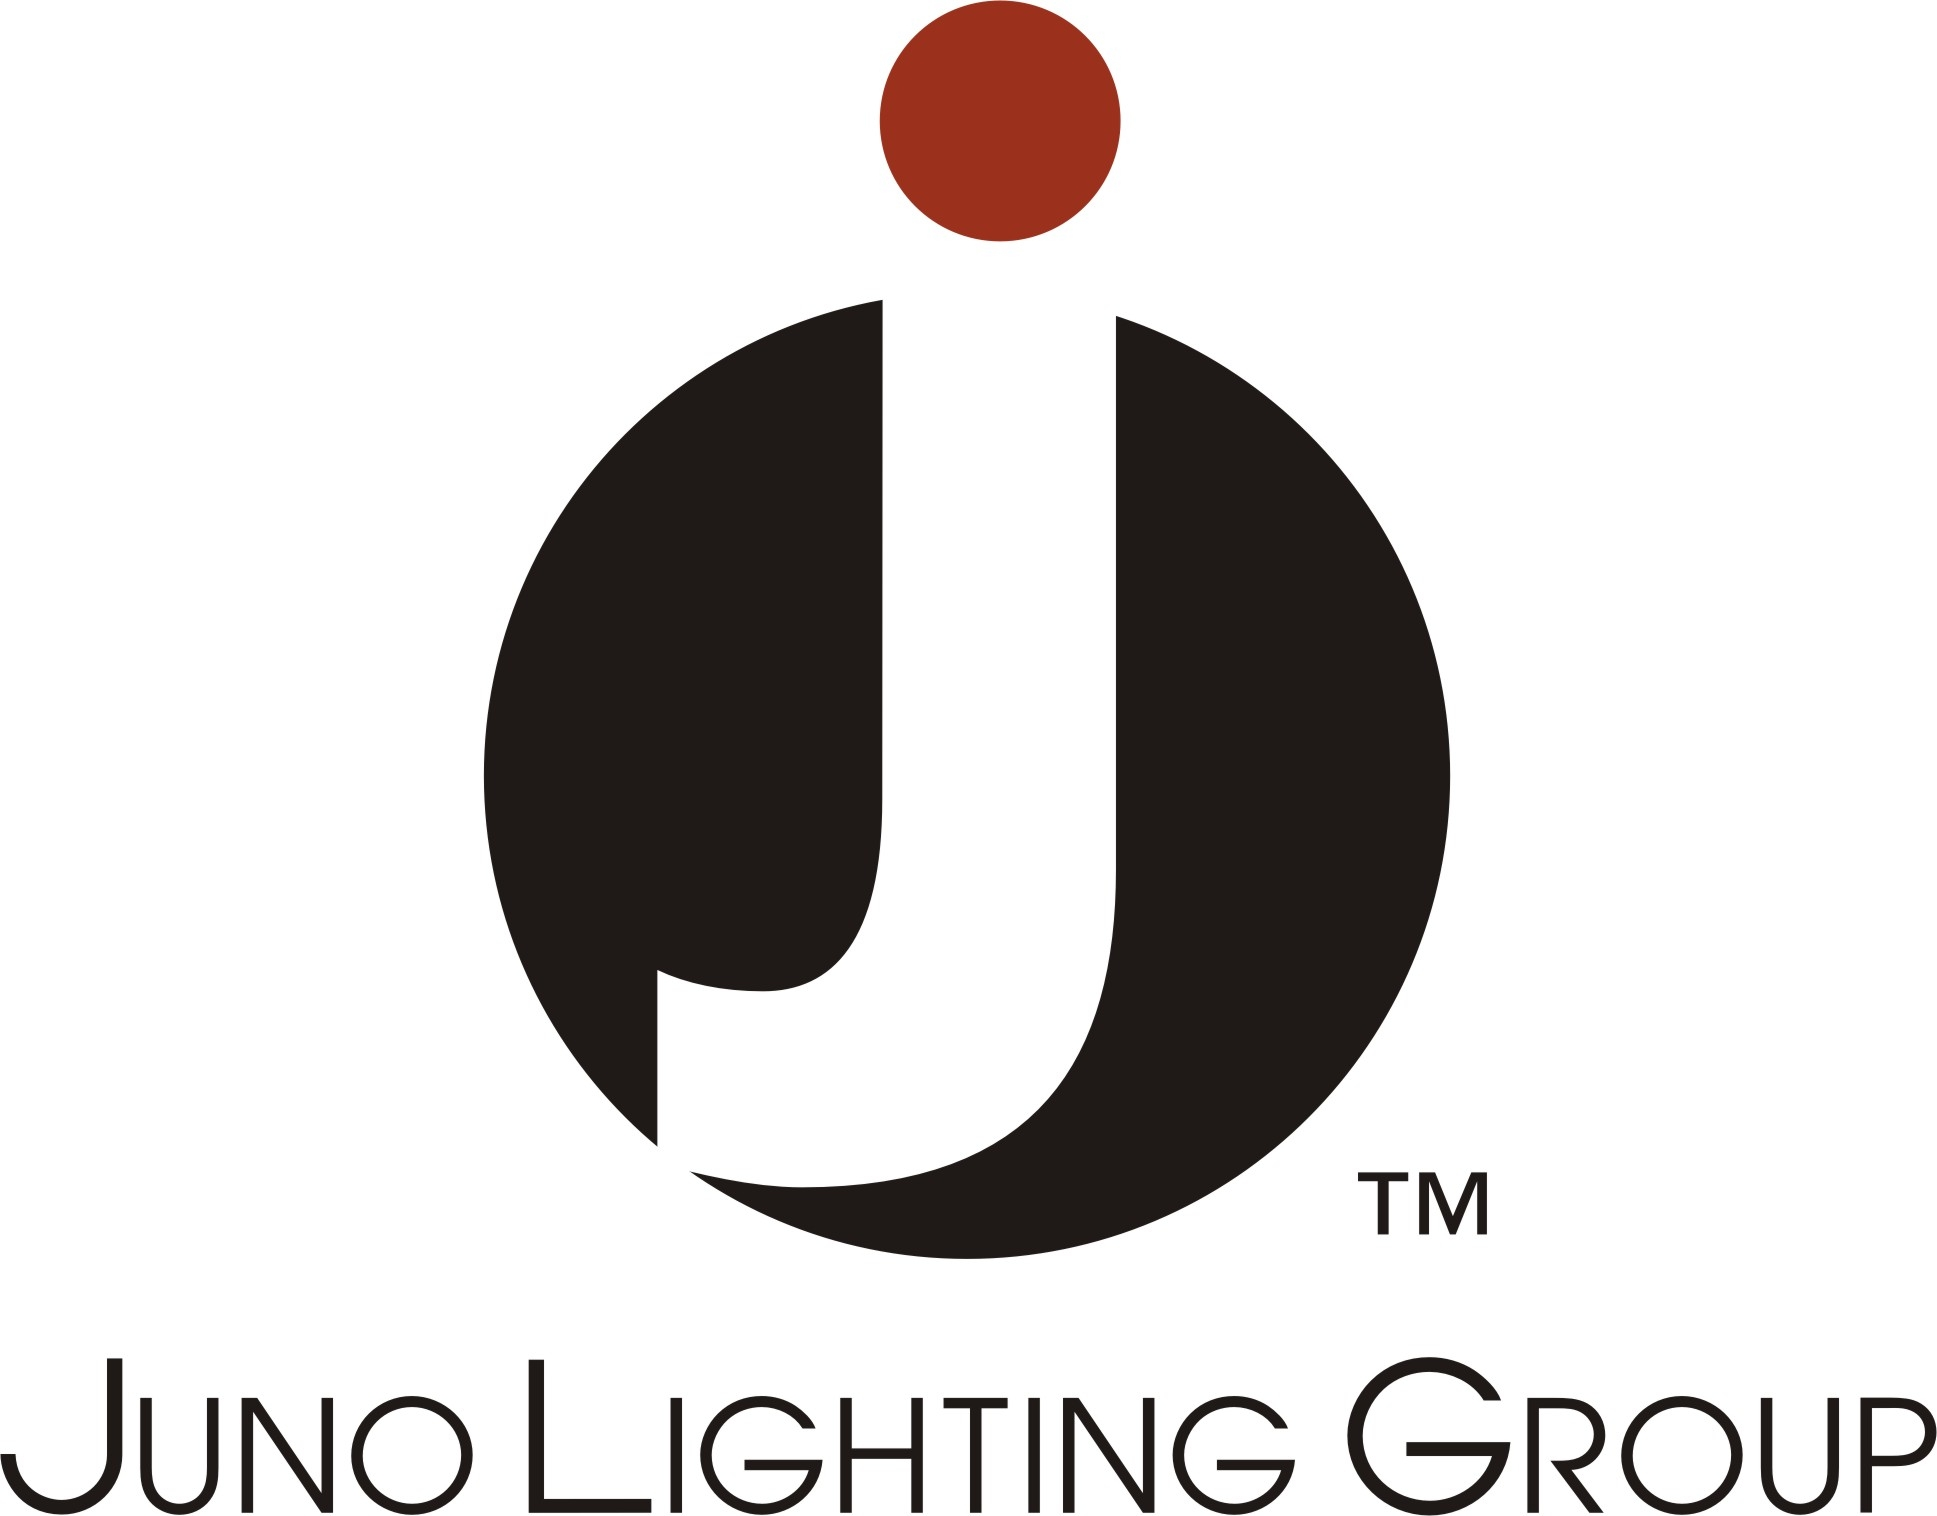 Delightful Juno Lighting Group C6V 126/42T Recessed Housing, 1 Lamp, 6 Inch,  Galvanized Steel   Summit Electric Supply U203a Wholesale Electrical Supplies  And Tools ... Good Looking